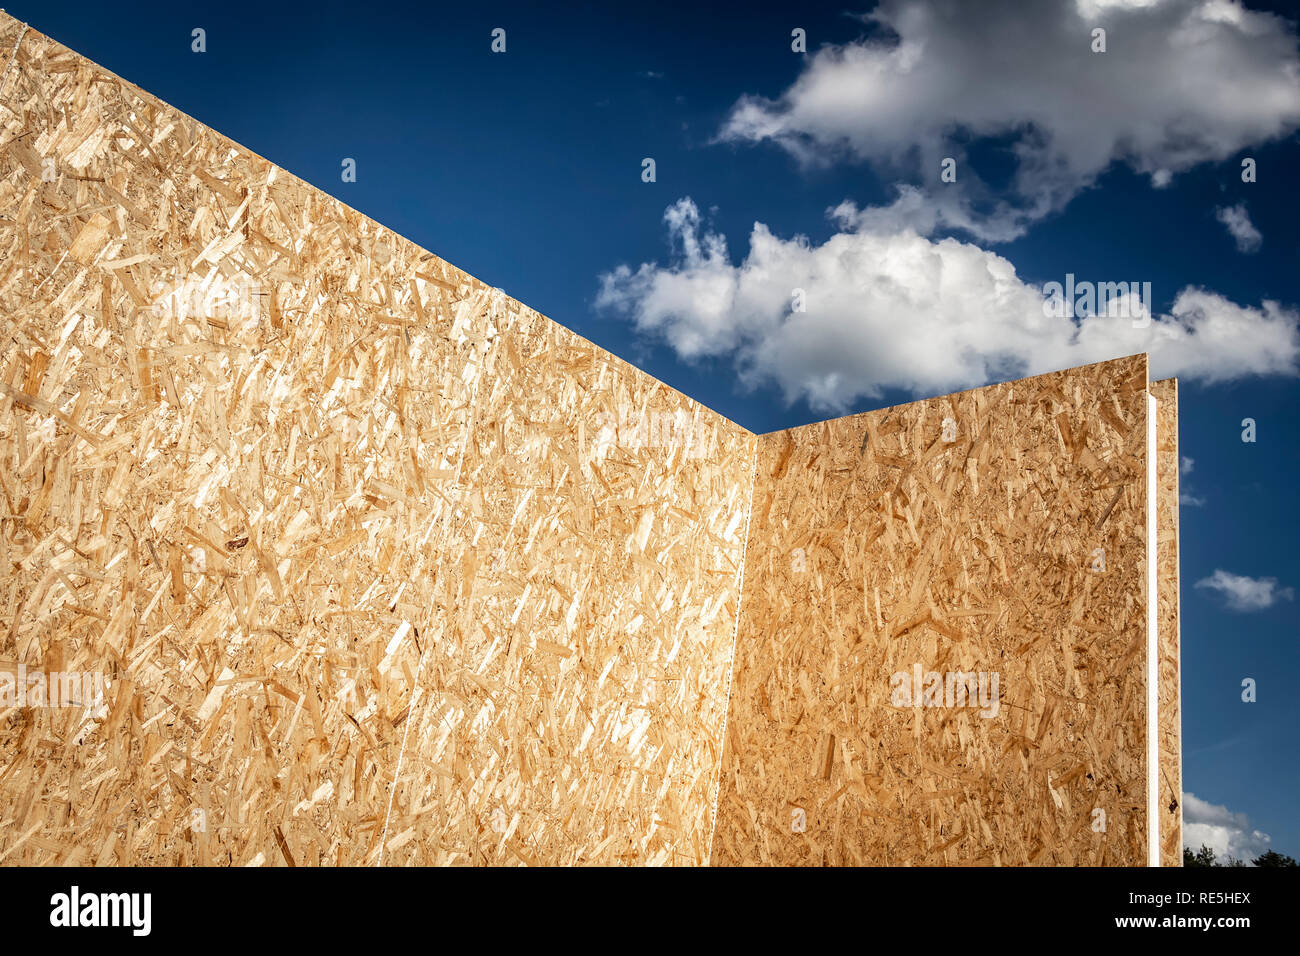 Construction of a wooden house of SIP panels. - Stock Image